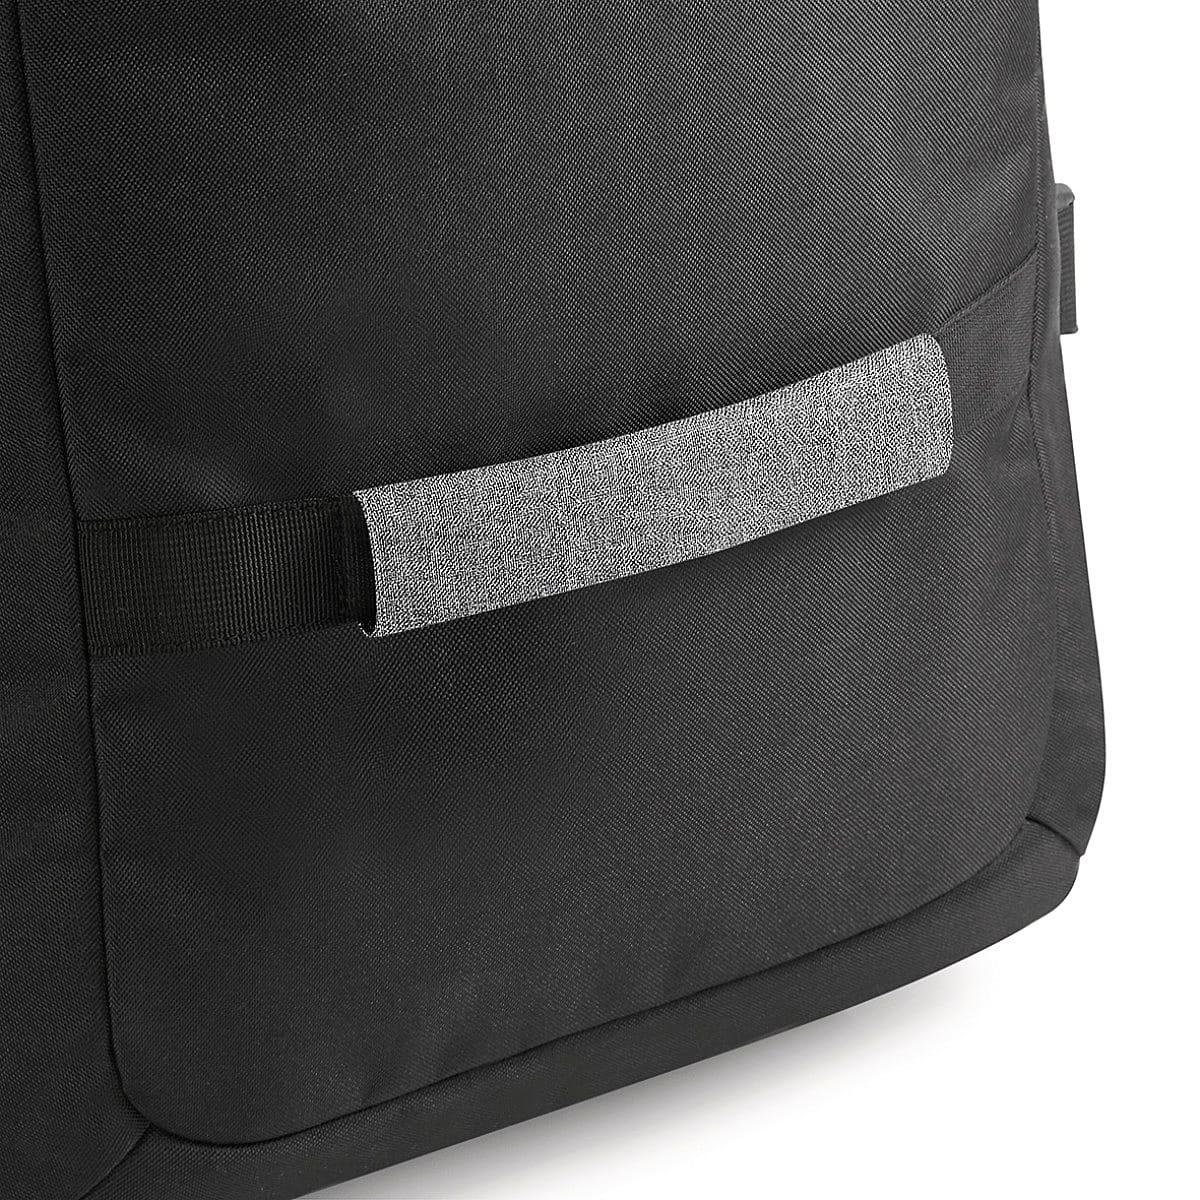 Bagbase Escape Handle Wrap in Grey Marl (Product Code: BG485)